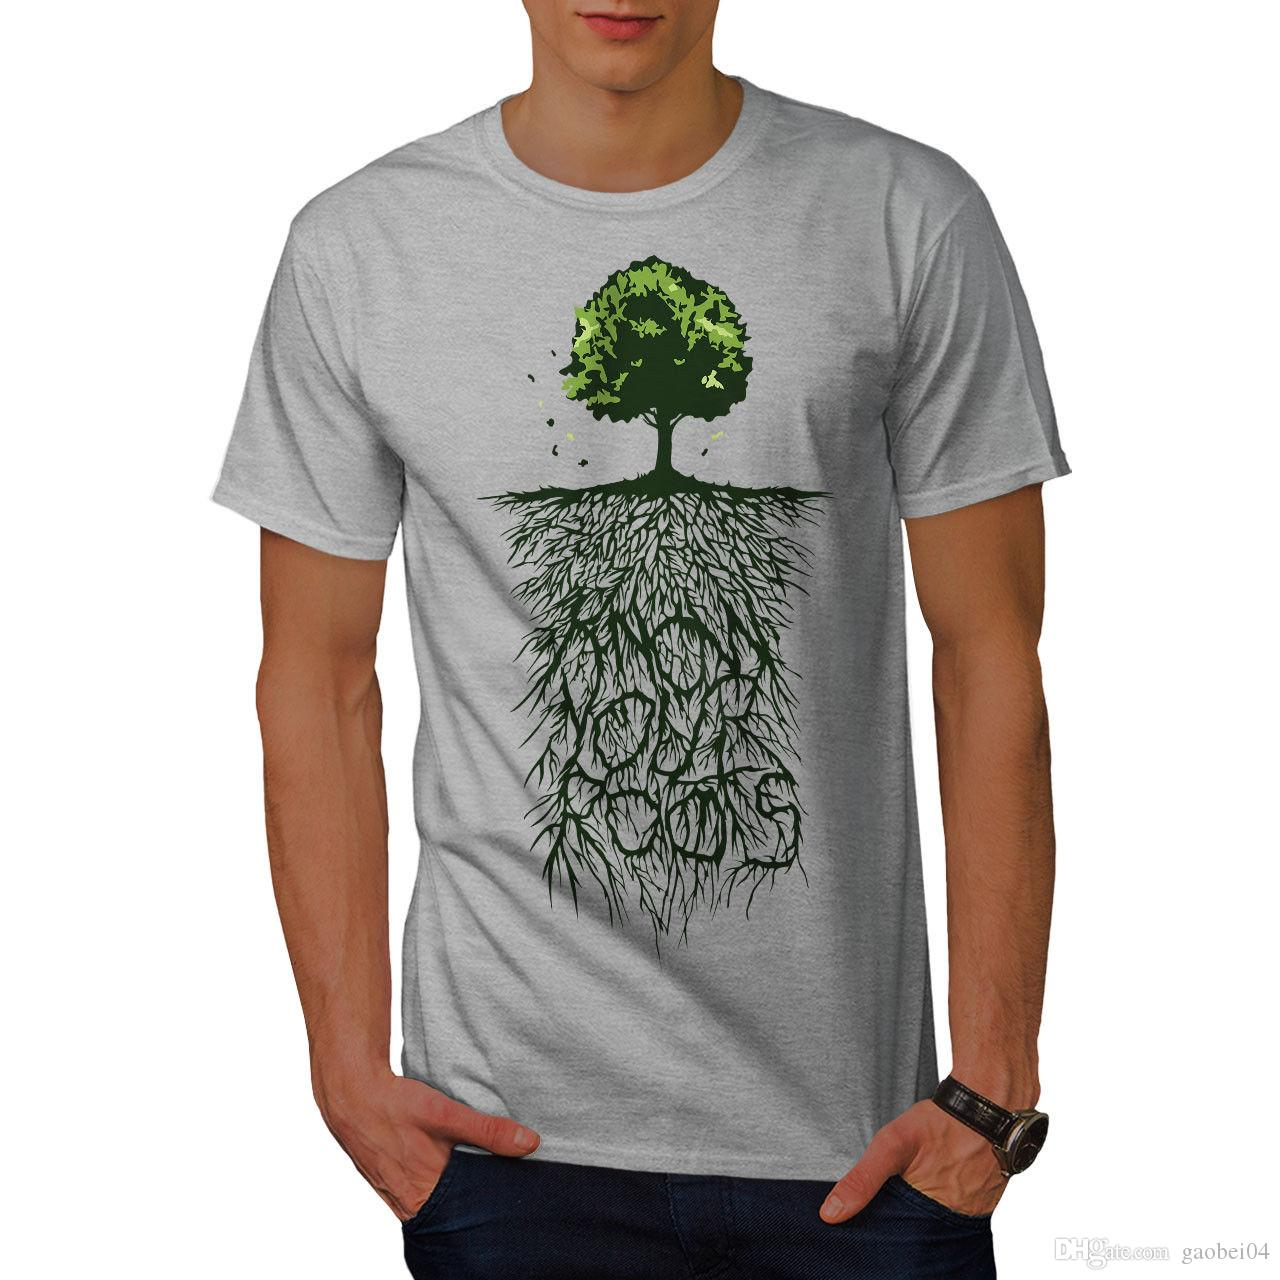 T Shirts With Tree Design | Earth Tree Roots Nature Mens T Shirt 0 Graphic Design Printed